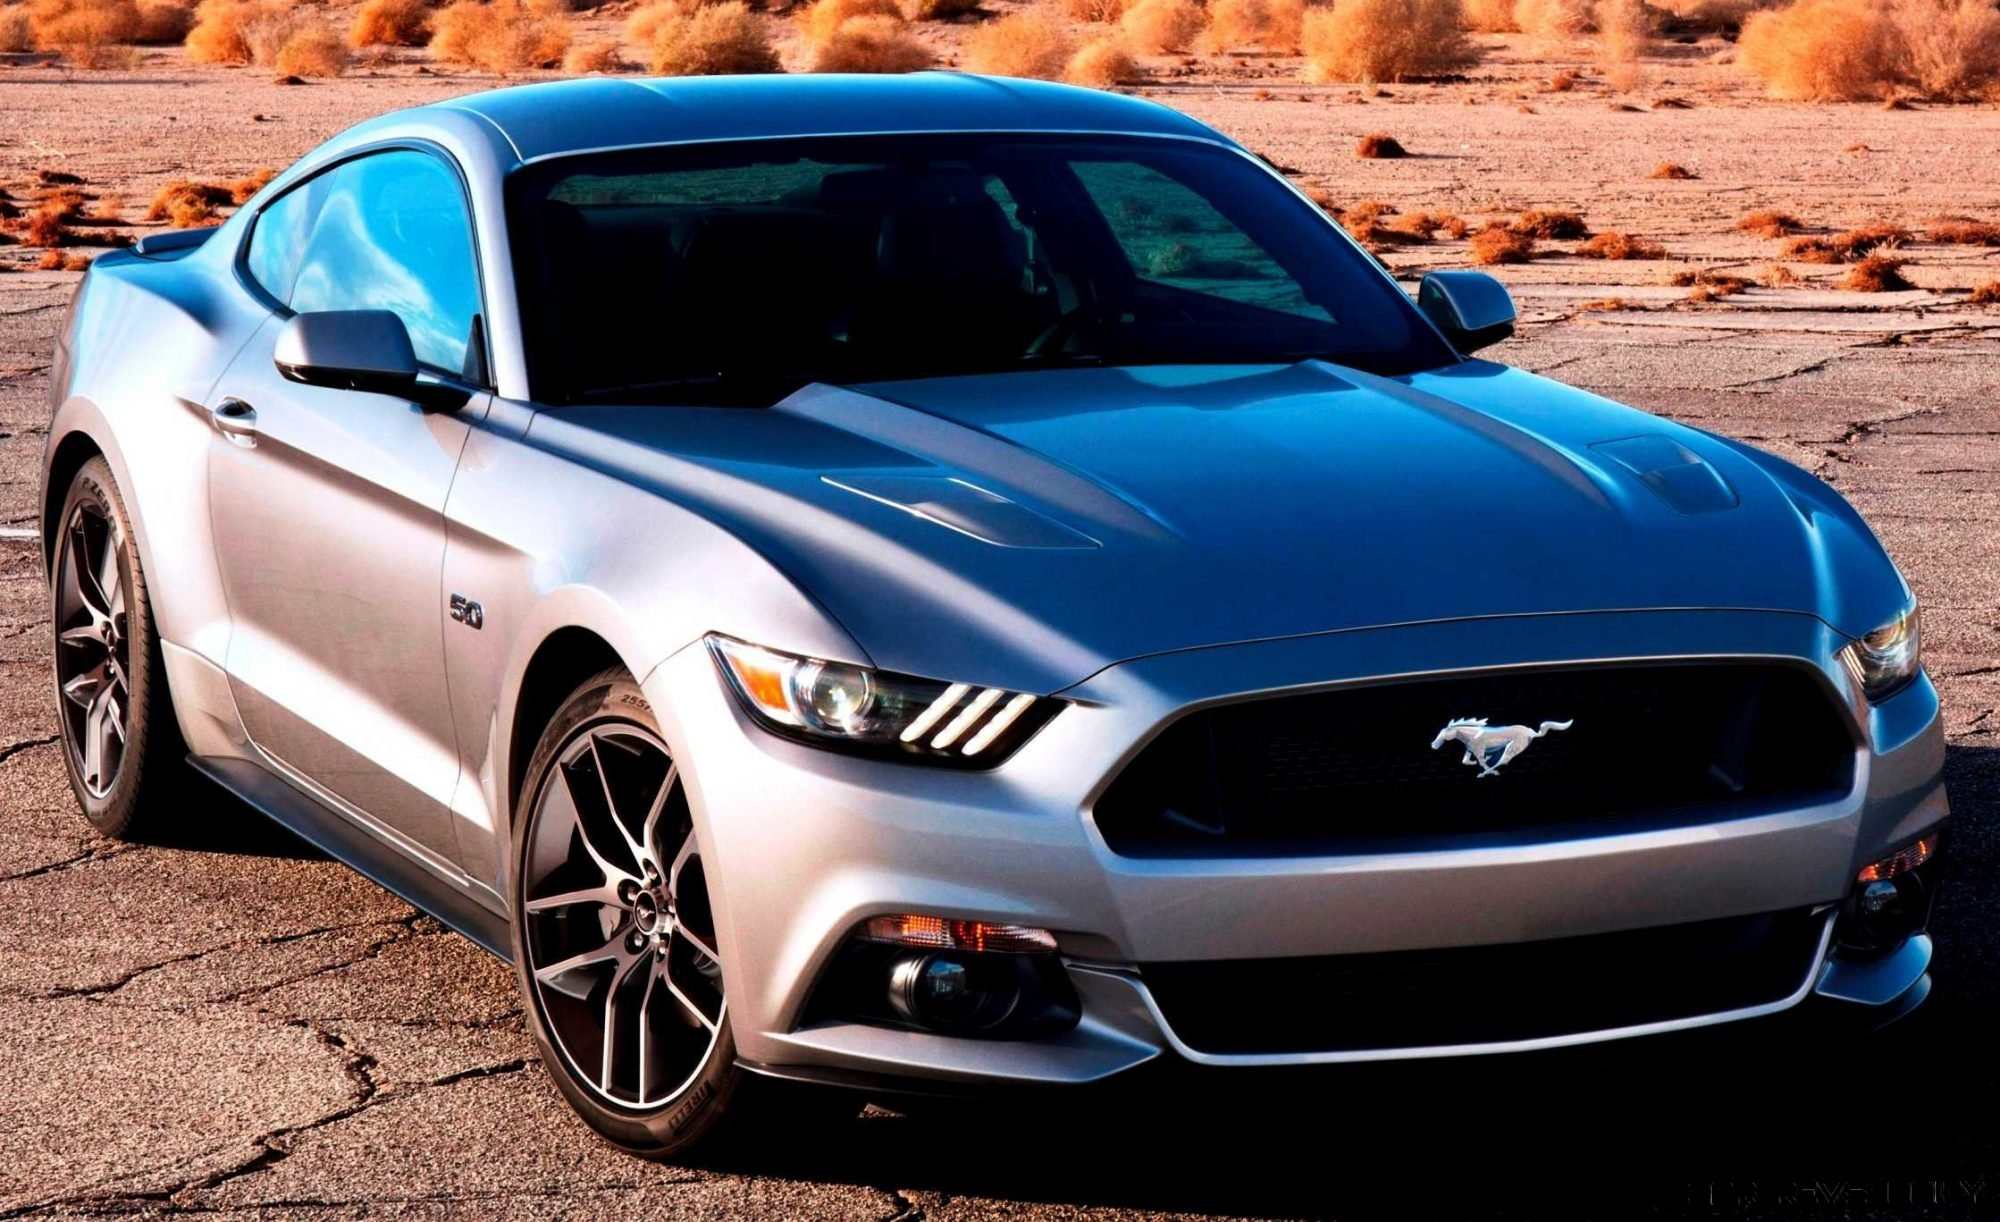 2015 ford mustang gt in silver - nearly 50 all-new images